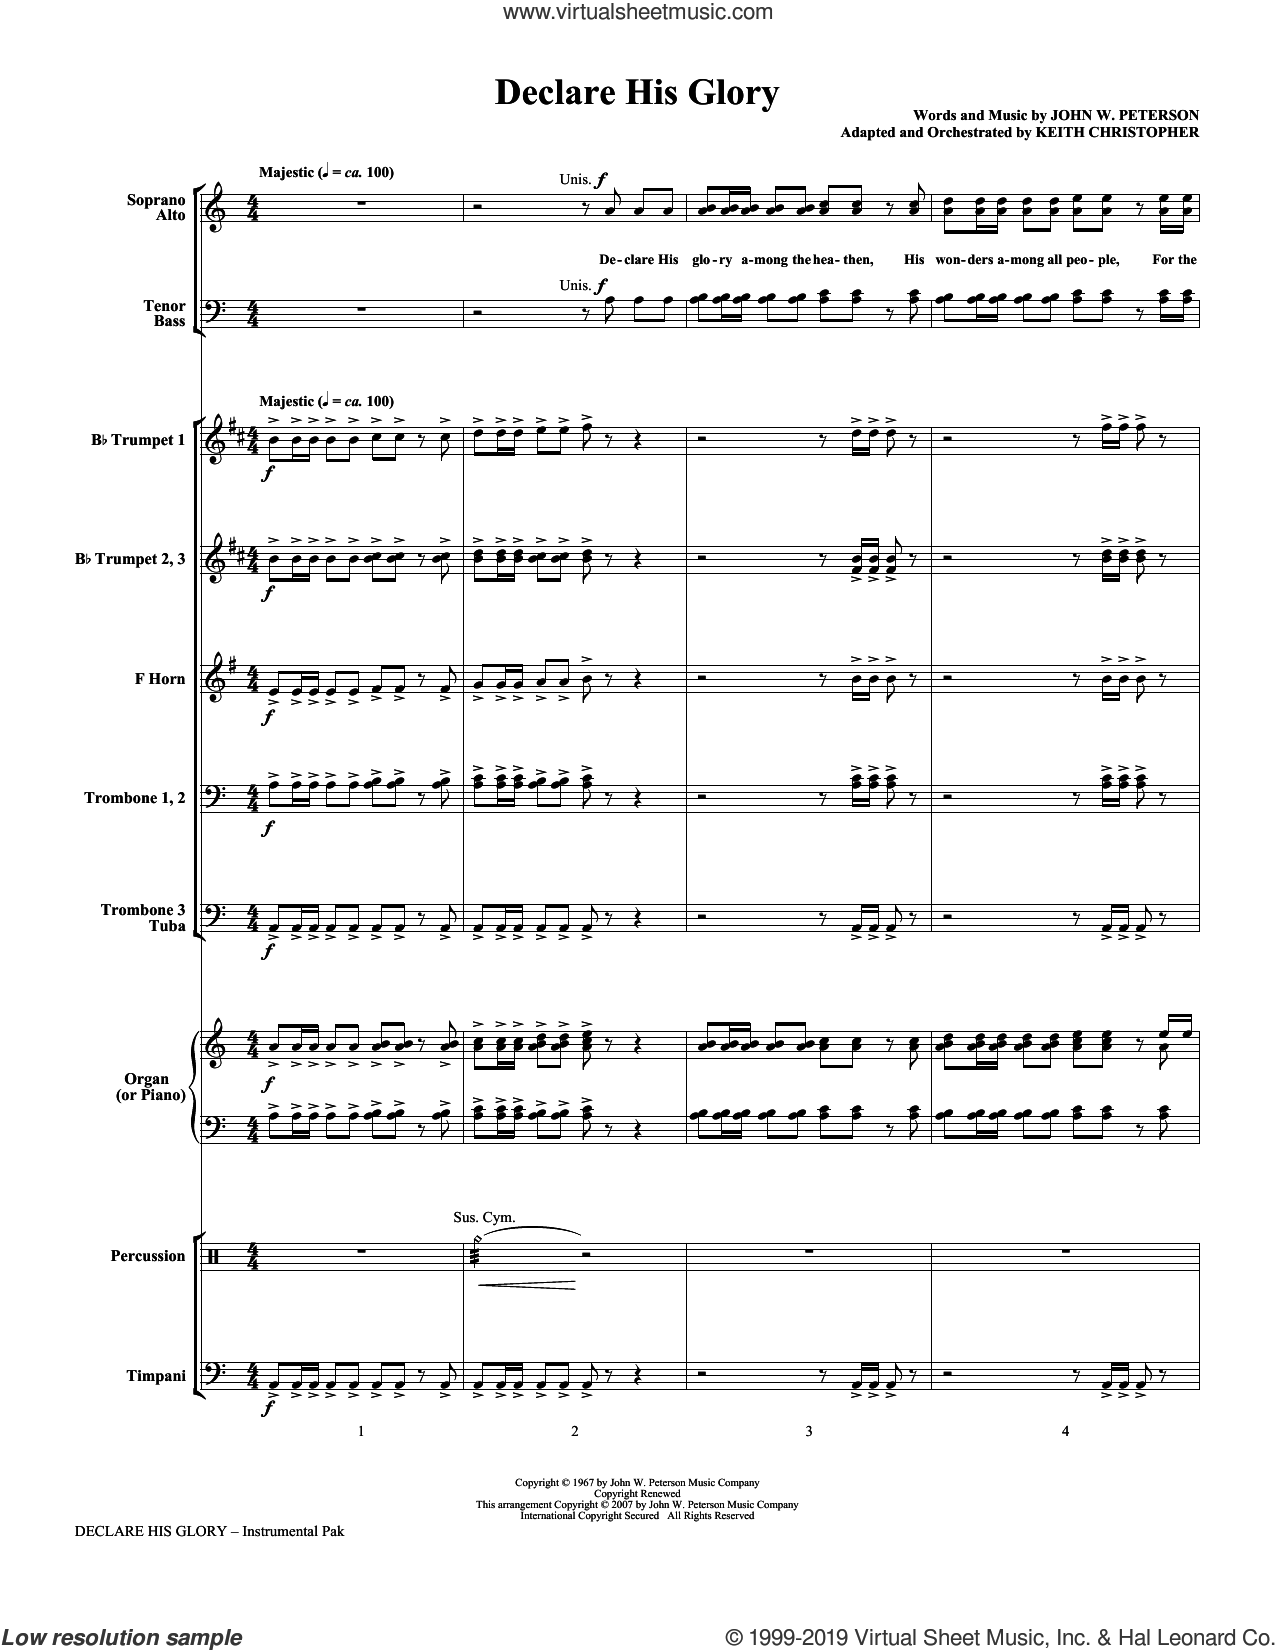 Declare His Glory (COMPLETE) sheet music for orchestra/band (Brass) by Keith Christopher and John W. Peterson, intermediate skill level